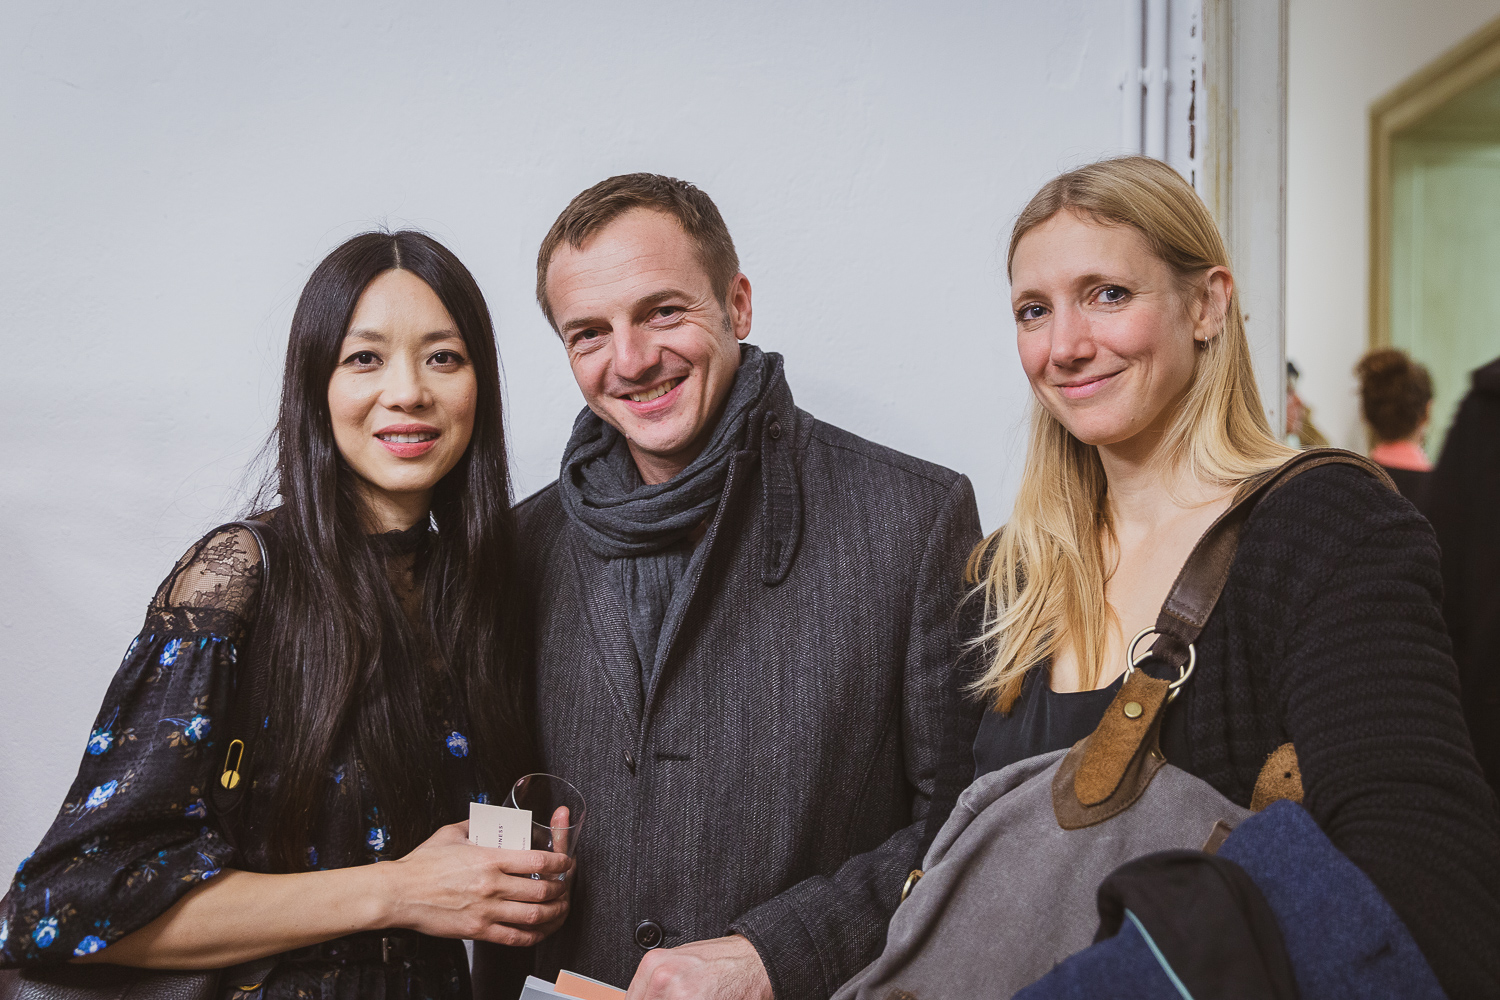 2018-VALISE-Glint-LifestyleFinland-EveningVernissage-webres-7849.jpg